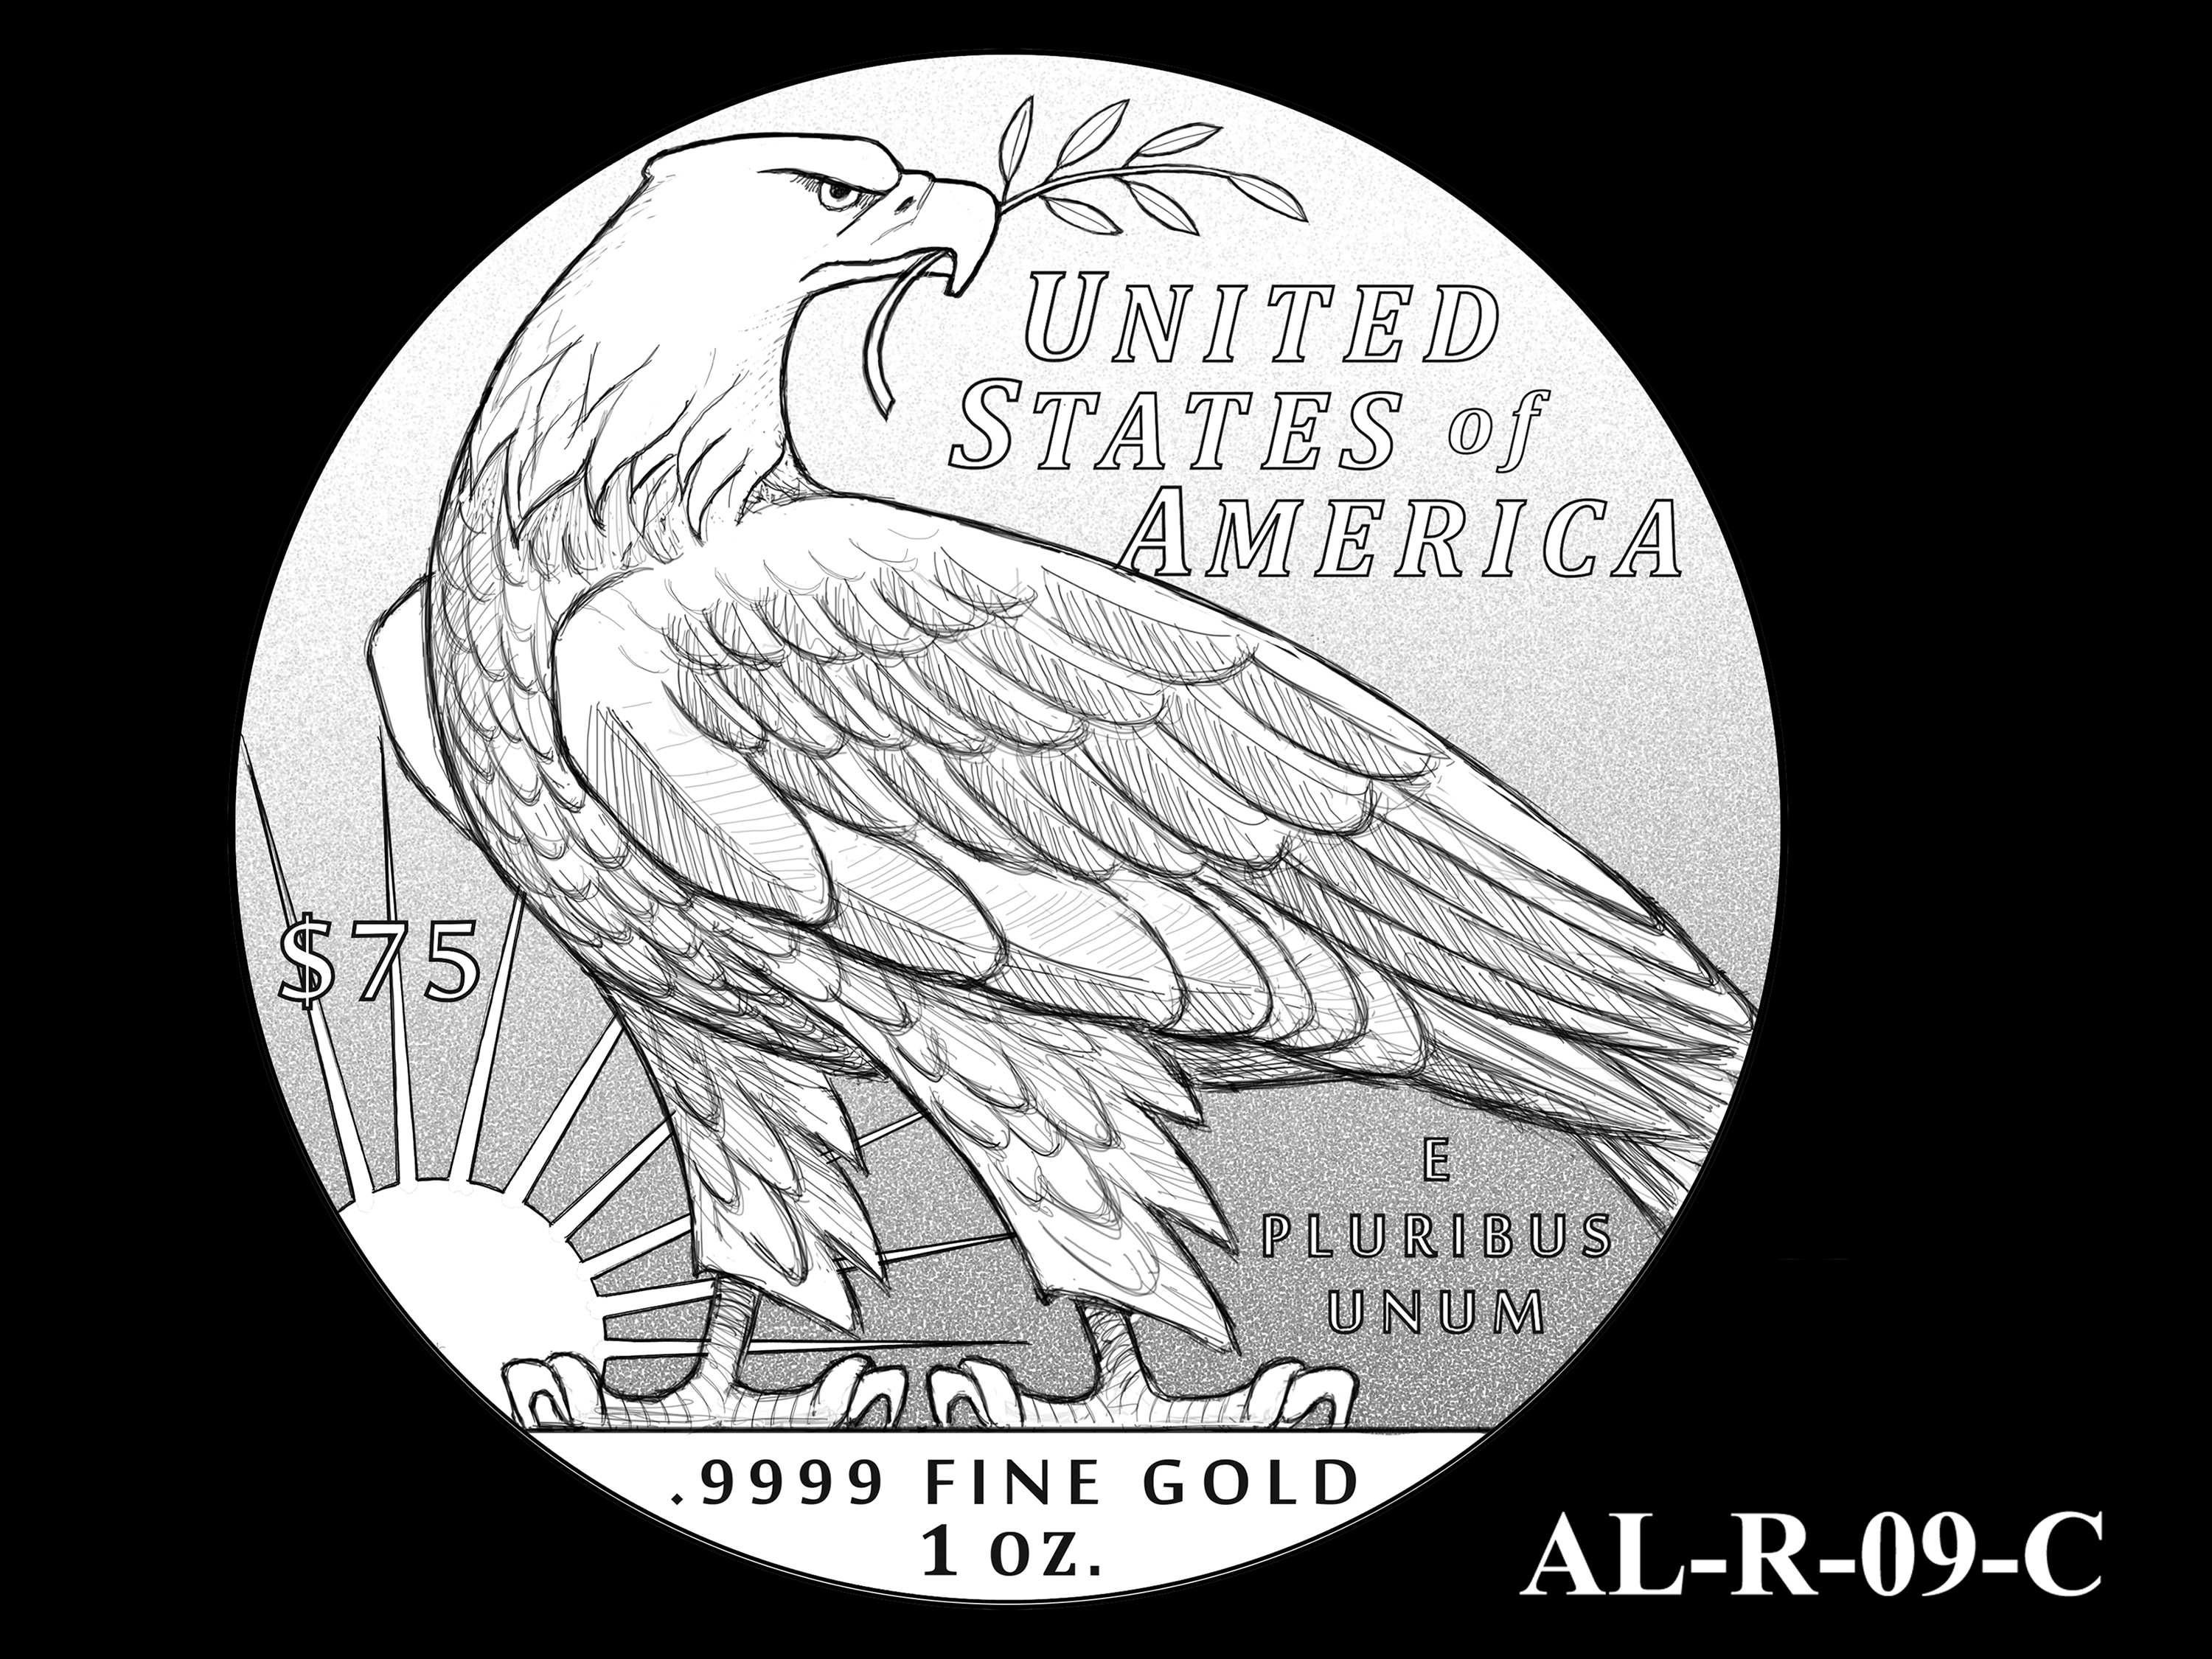 AL-R-09-C -- 2021 American Liberty Gold Coin and Silver Medal Program - Reverse